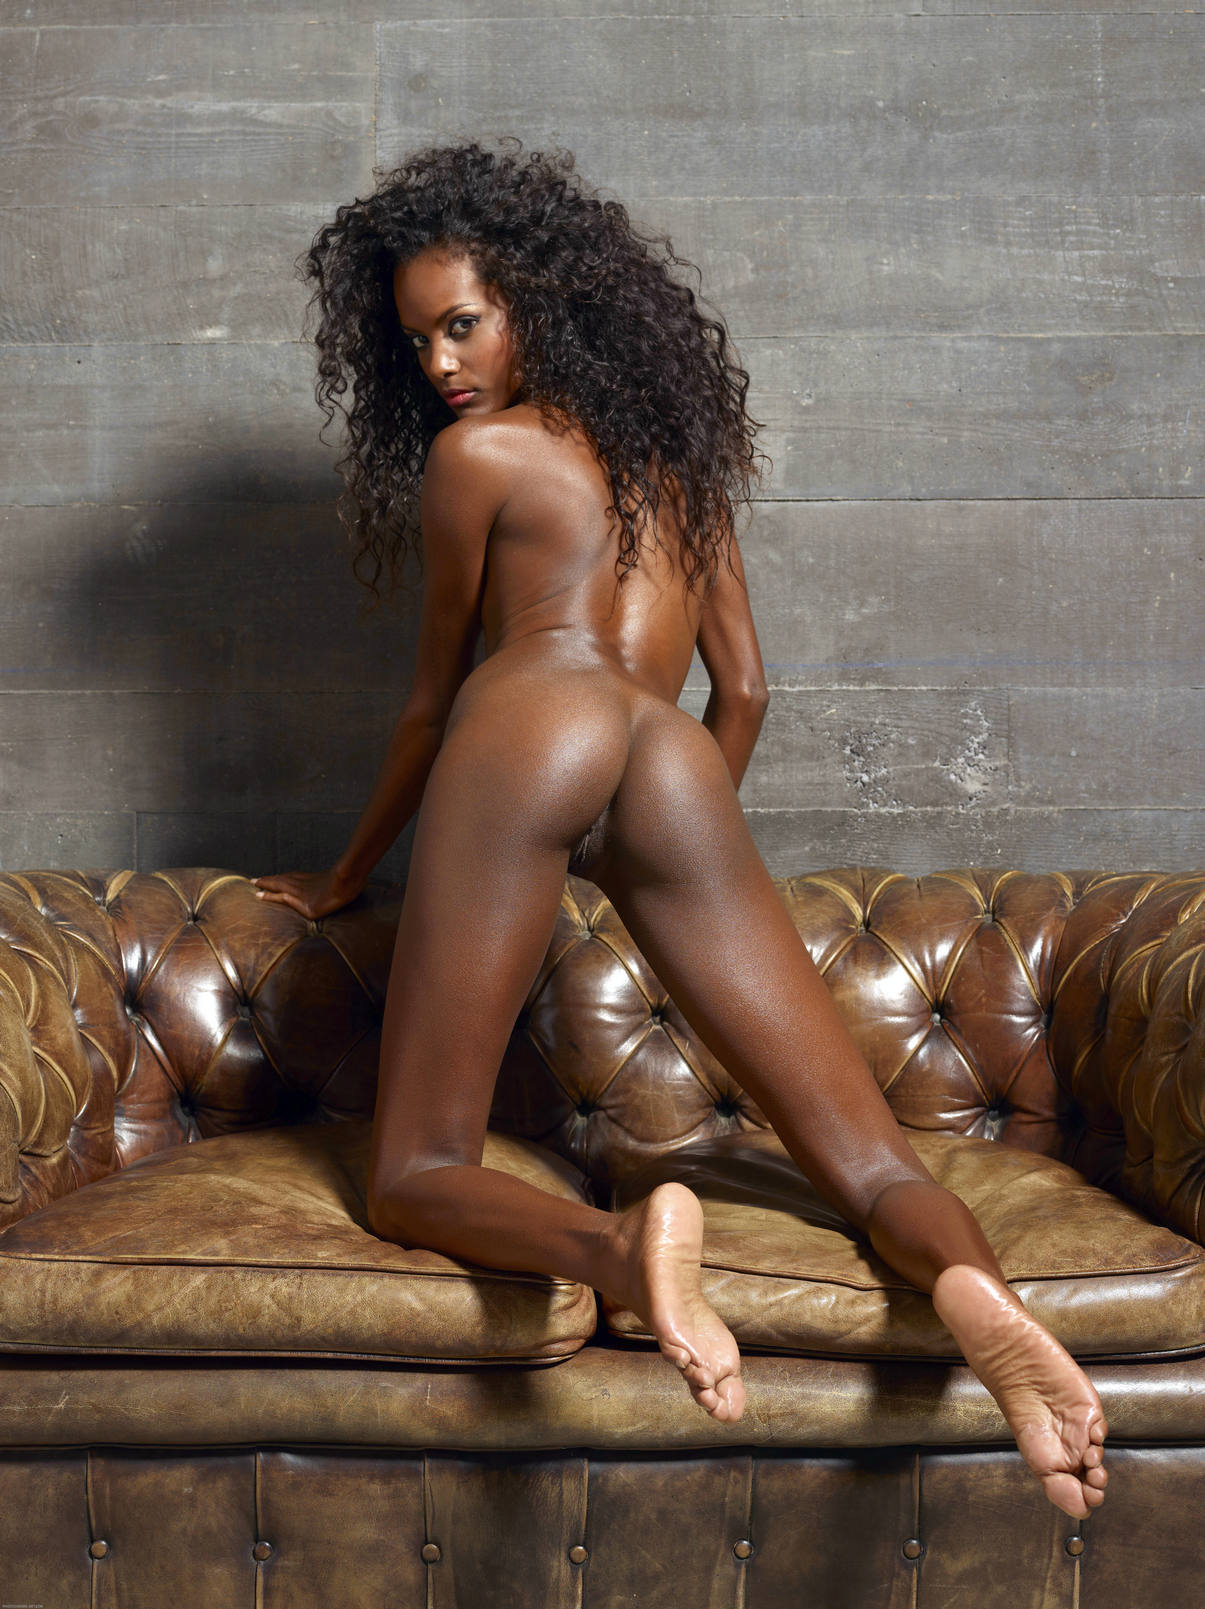 Oiled skinny black girls nude authoritative